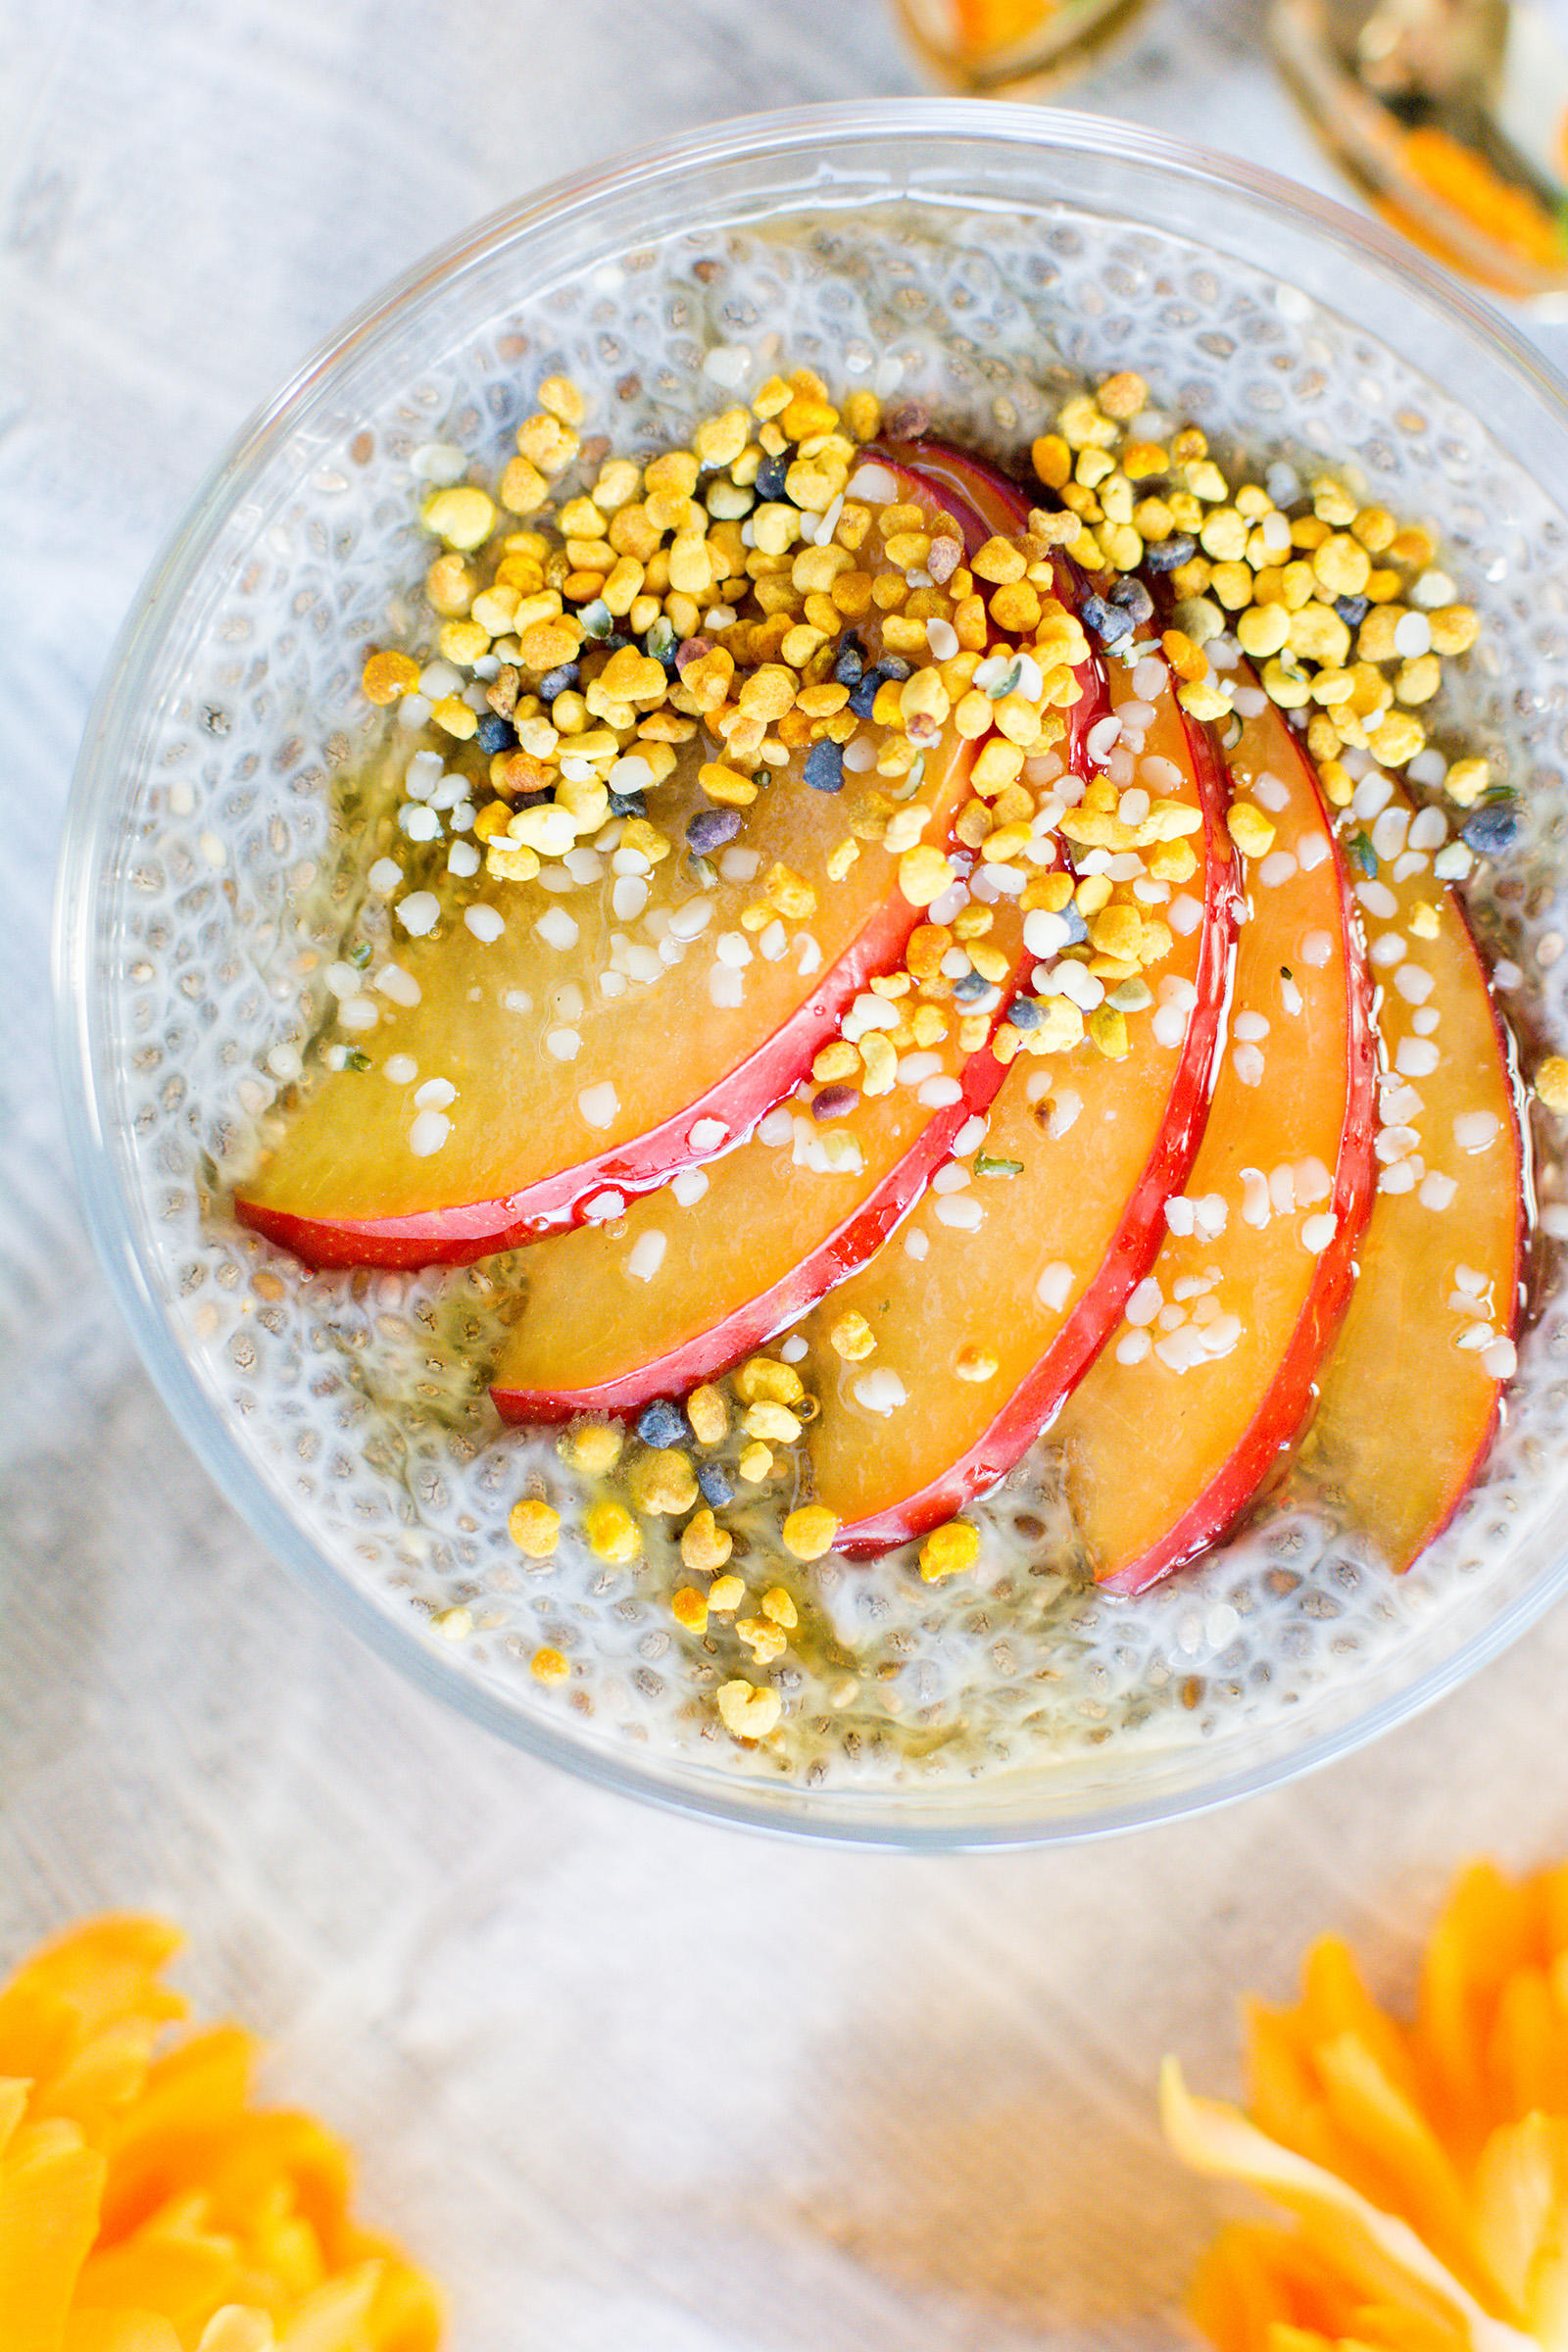 Easy Chia Pudding Recipe with Bee Pollen and Hemp Seed